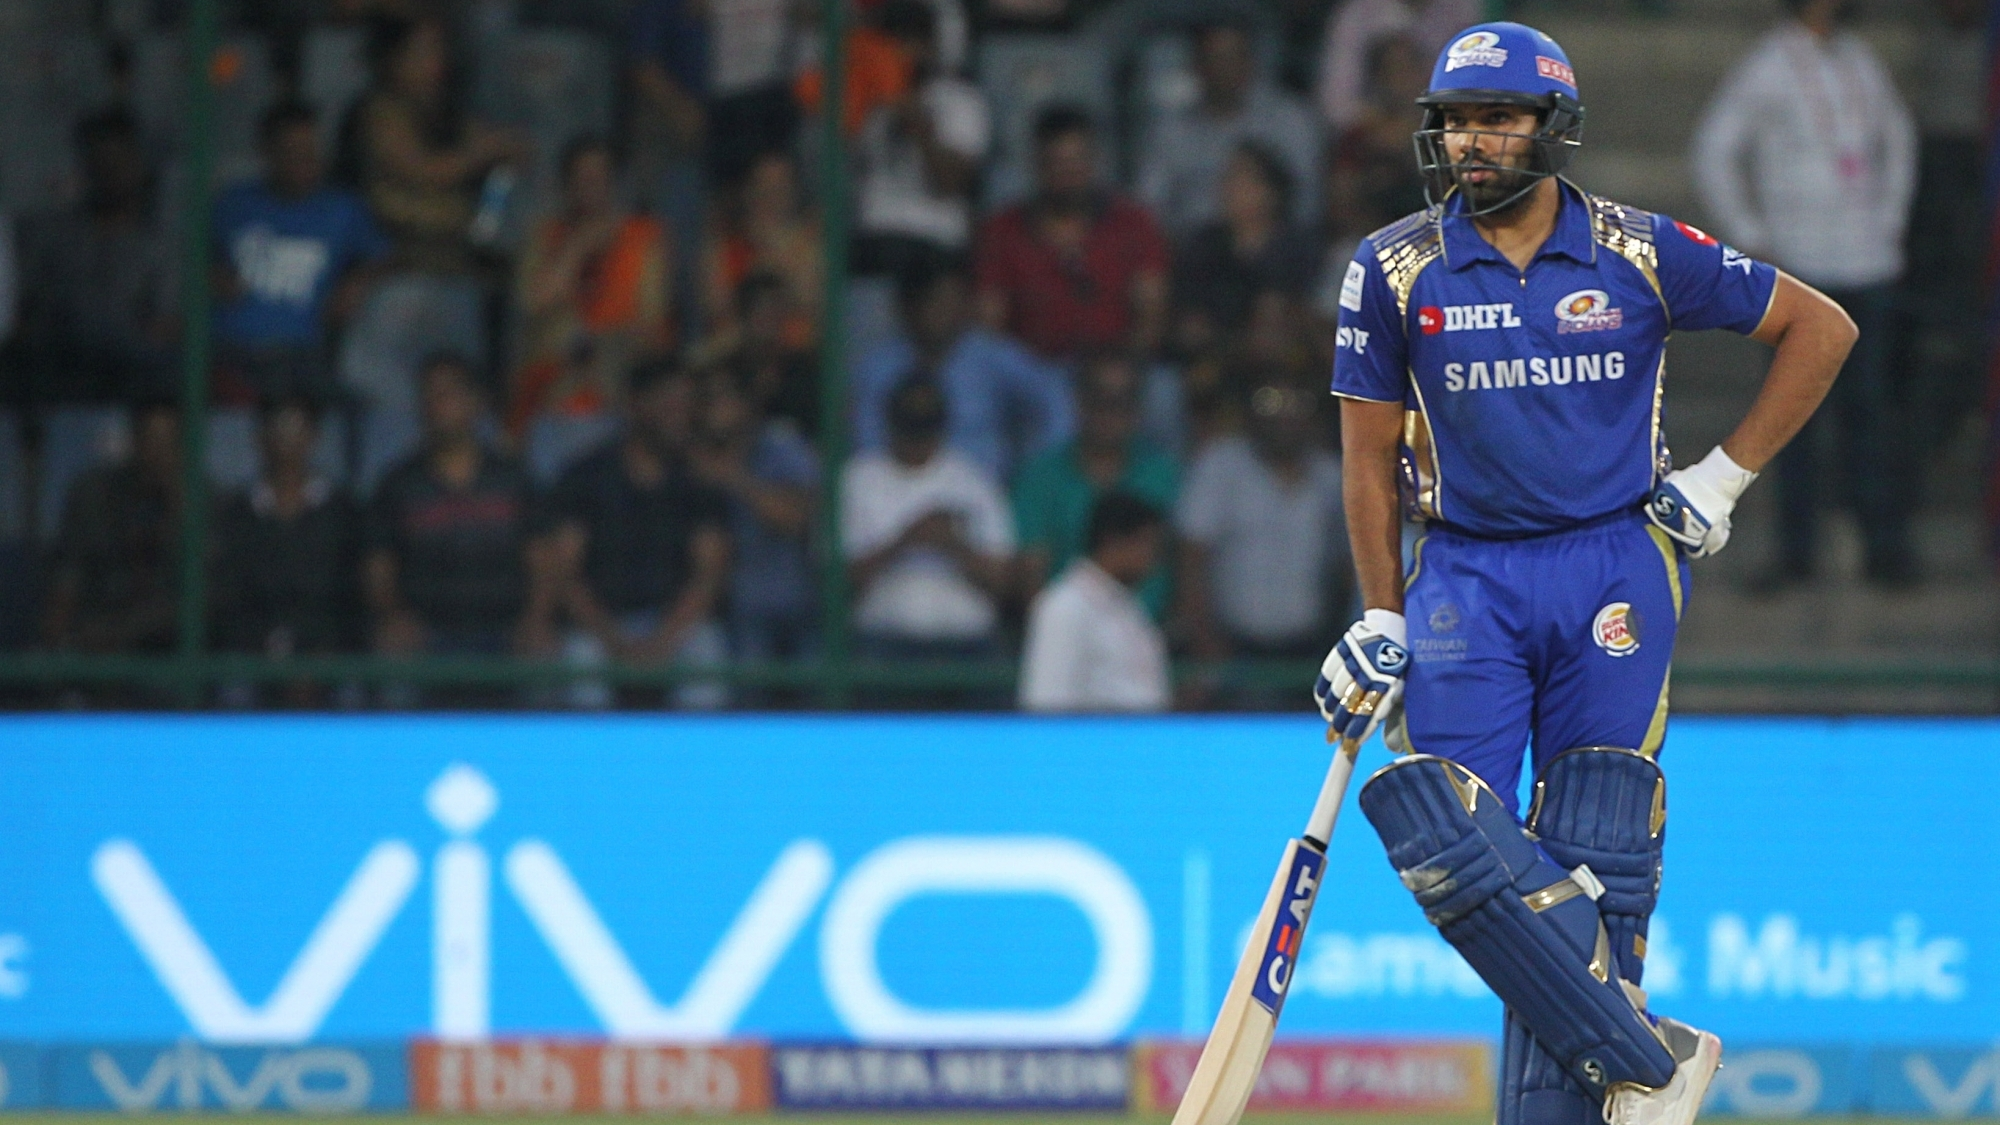 IPL 2018: Match 55, DD vs MI: Twitter reacts as Delhi knocks out Mumbai from the tournament